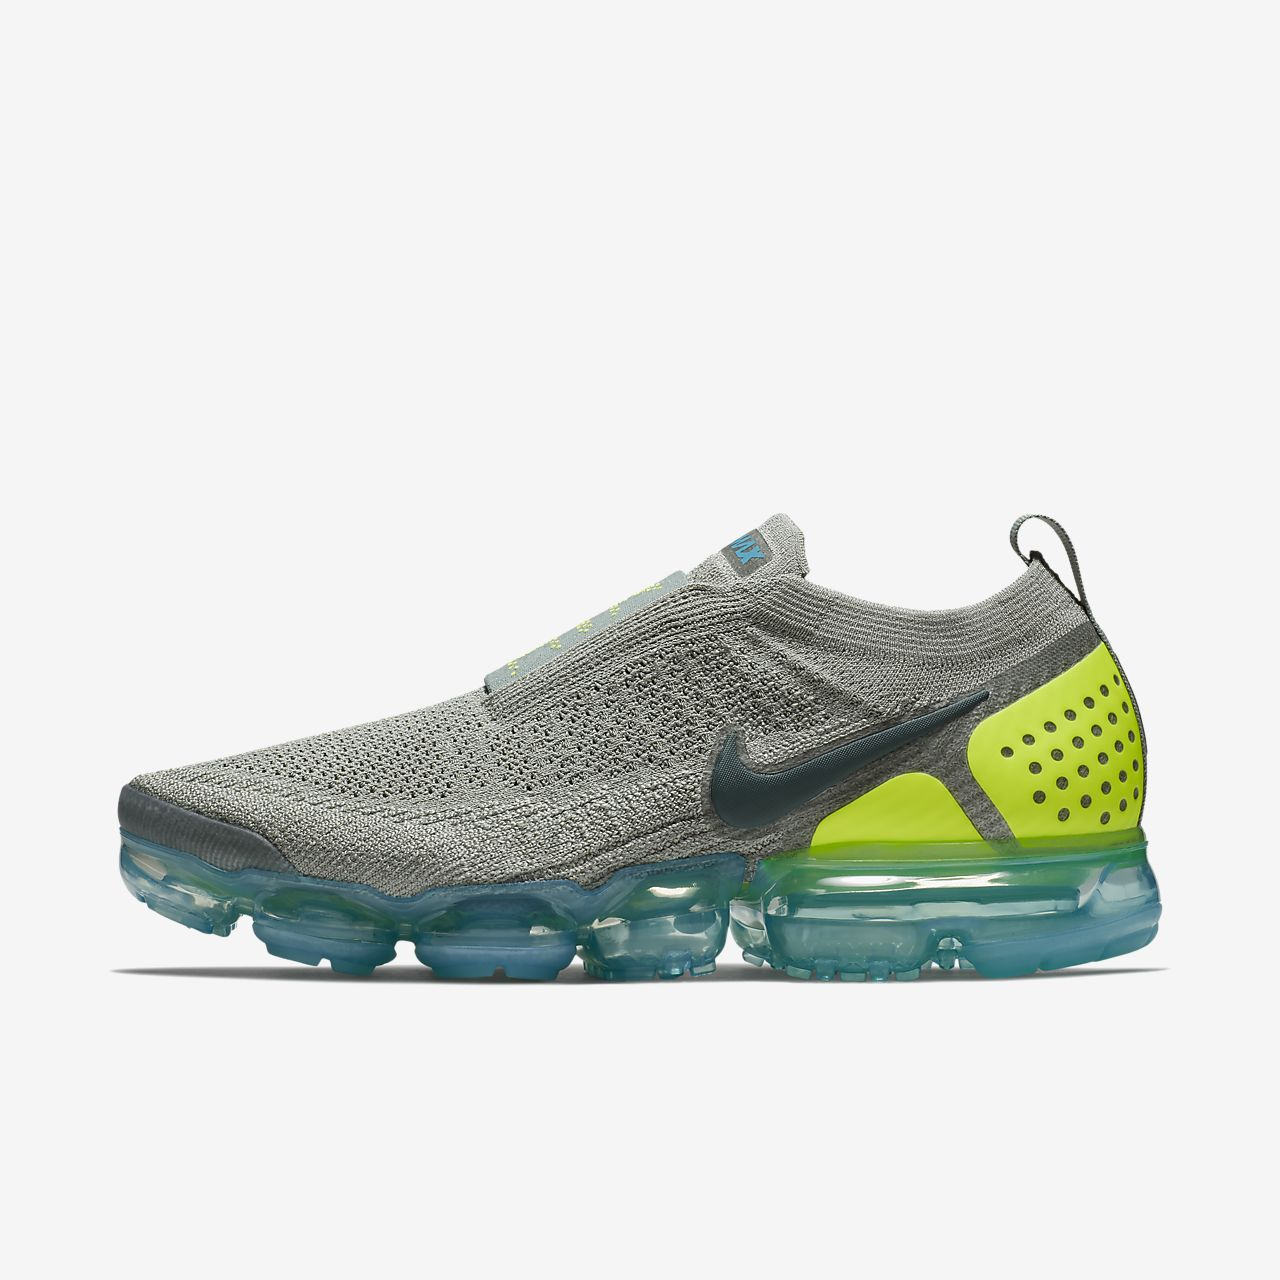 37dc61520bc Nike Air VaporMax Flyknit Moc 2 Shoe. Nike.com AT